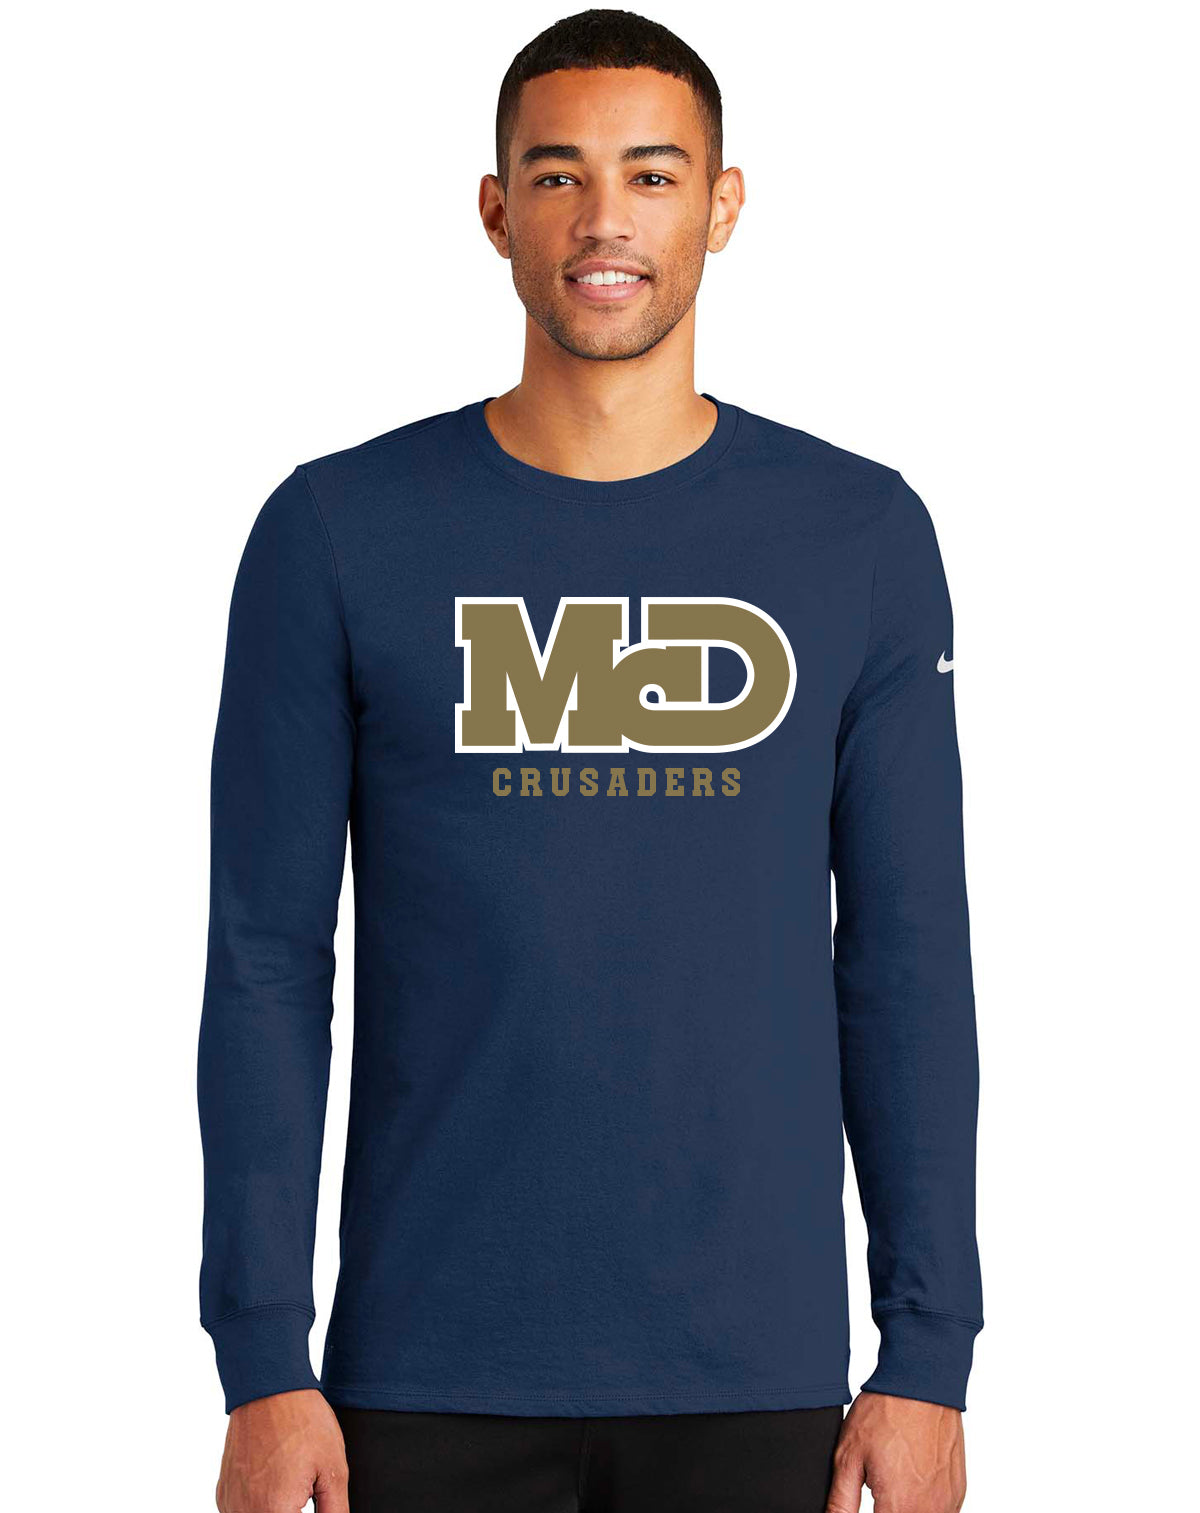 MCD NAVY CRUSADERS LONG SLEEVE TSHIRT